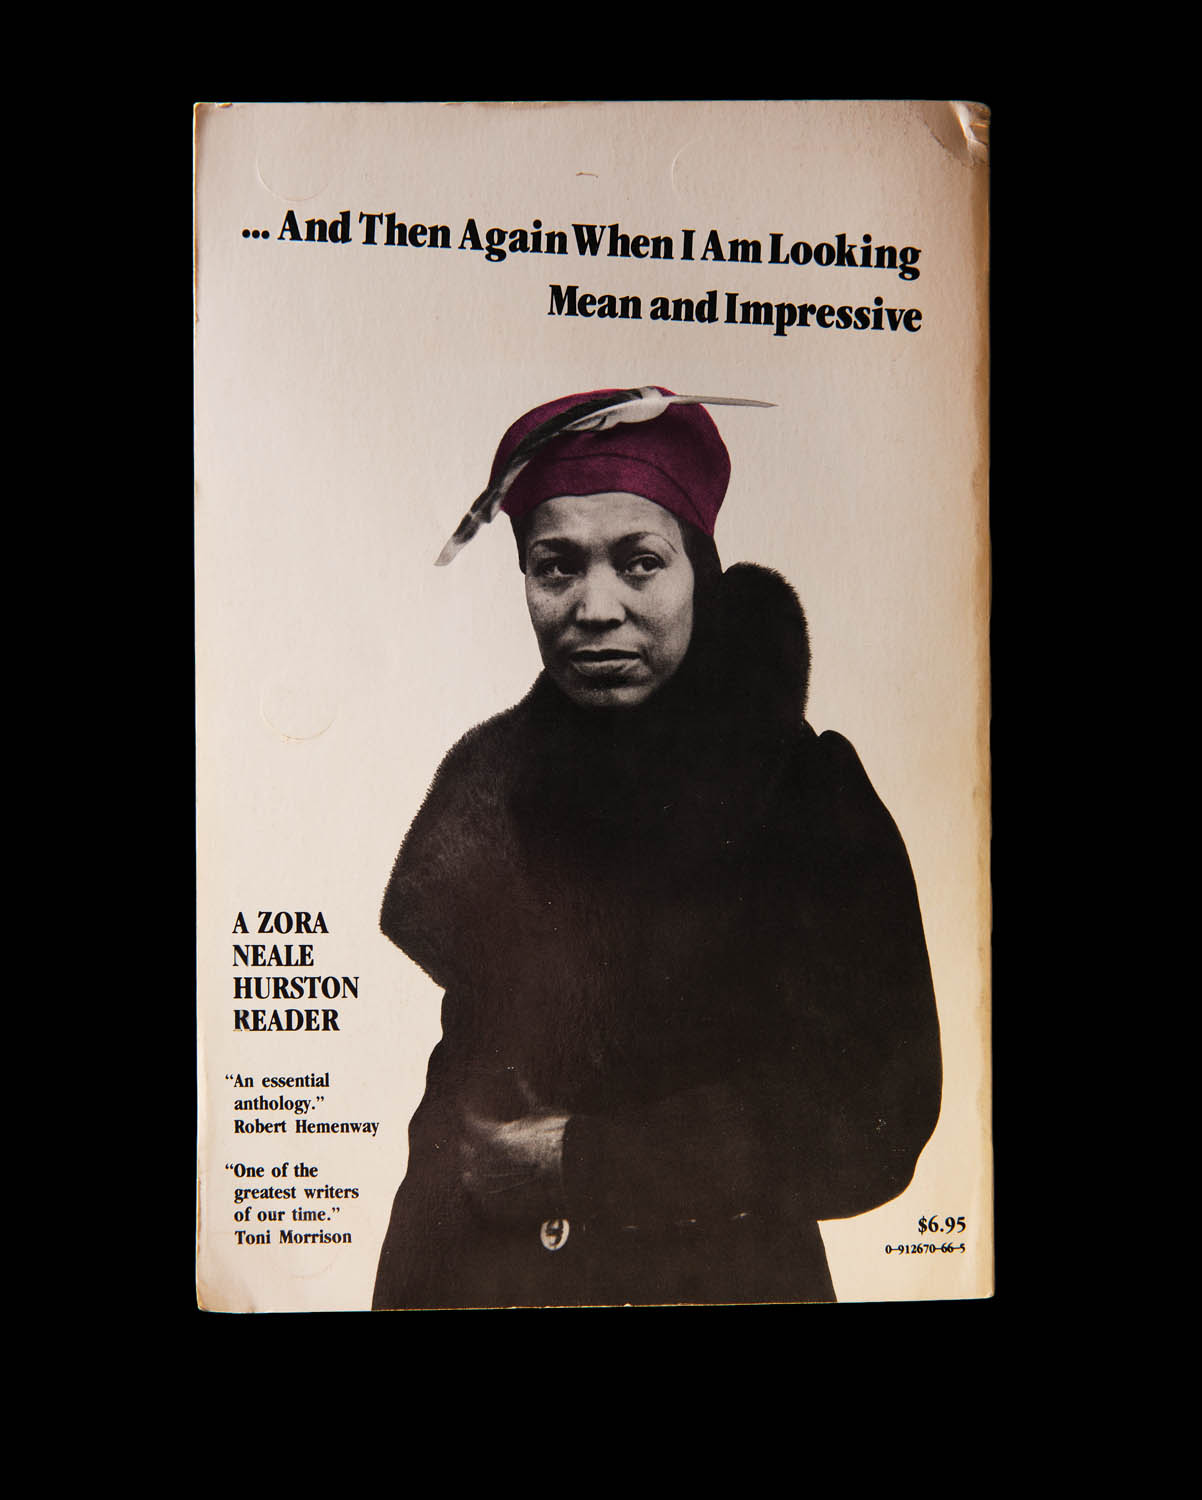 The back cover of I Love Myself When I Am Laughing…, a collection of Zora Neale Hurston's writing, edited and signed by The Color Purple author Alice Walker. Photographed by Jo Emmerson